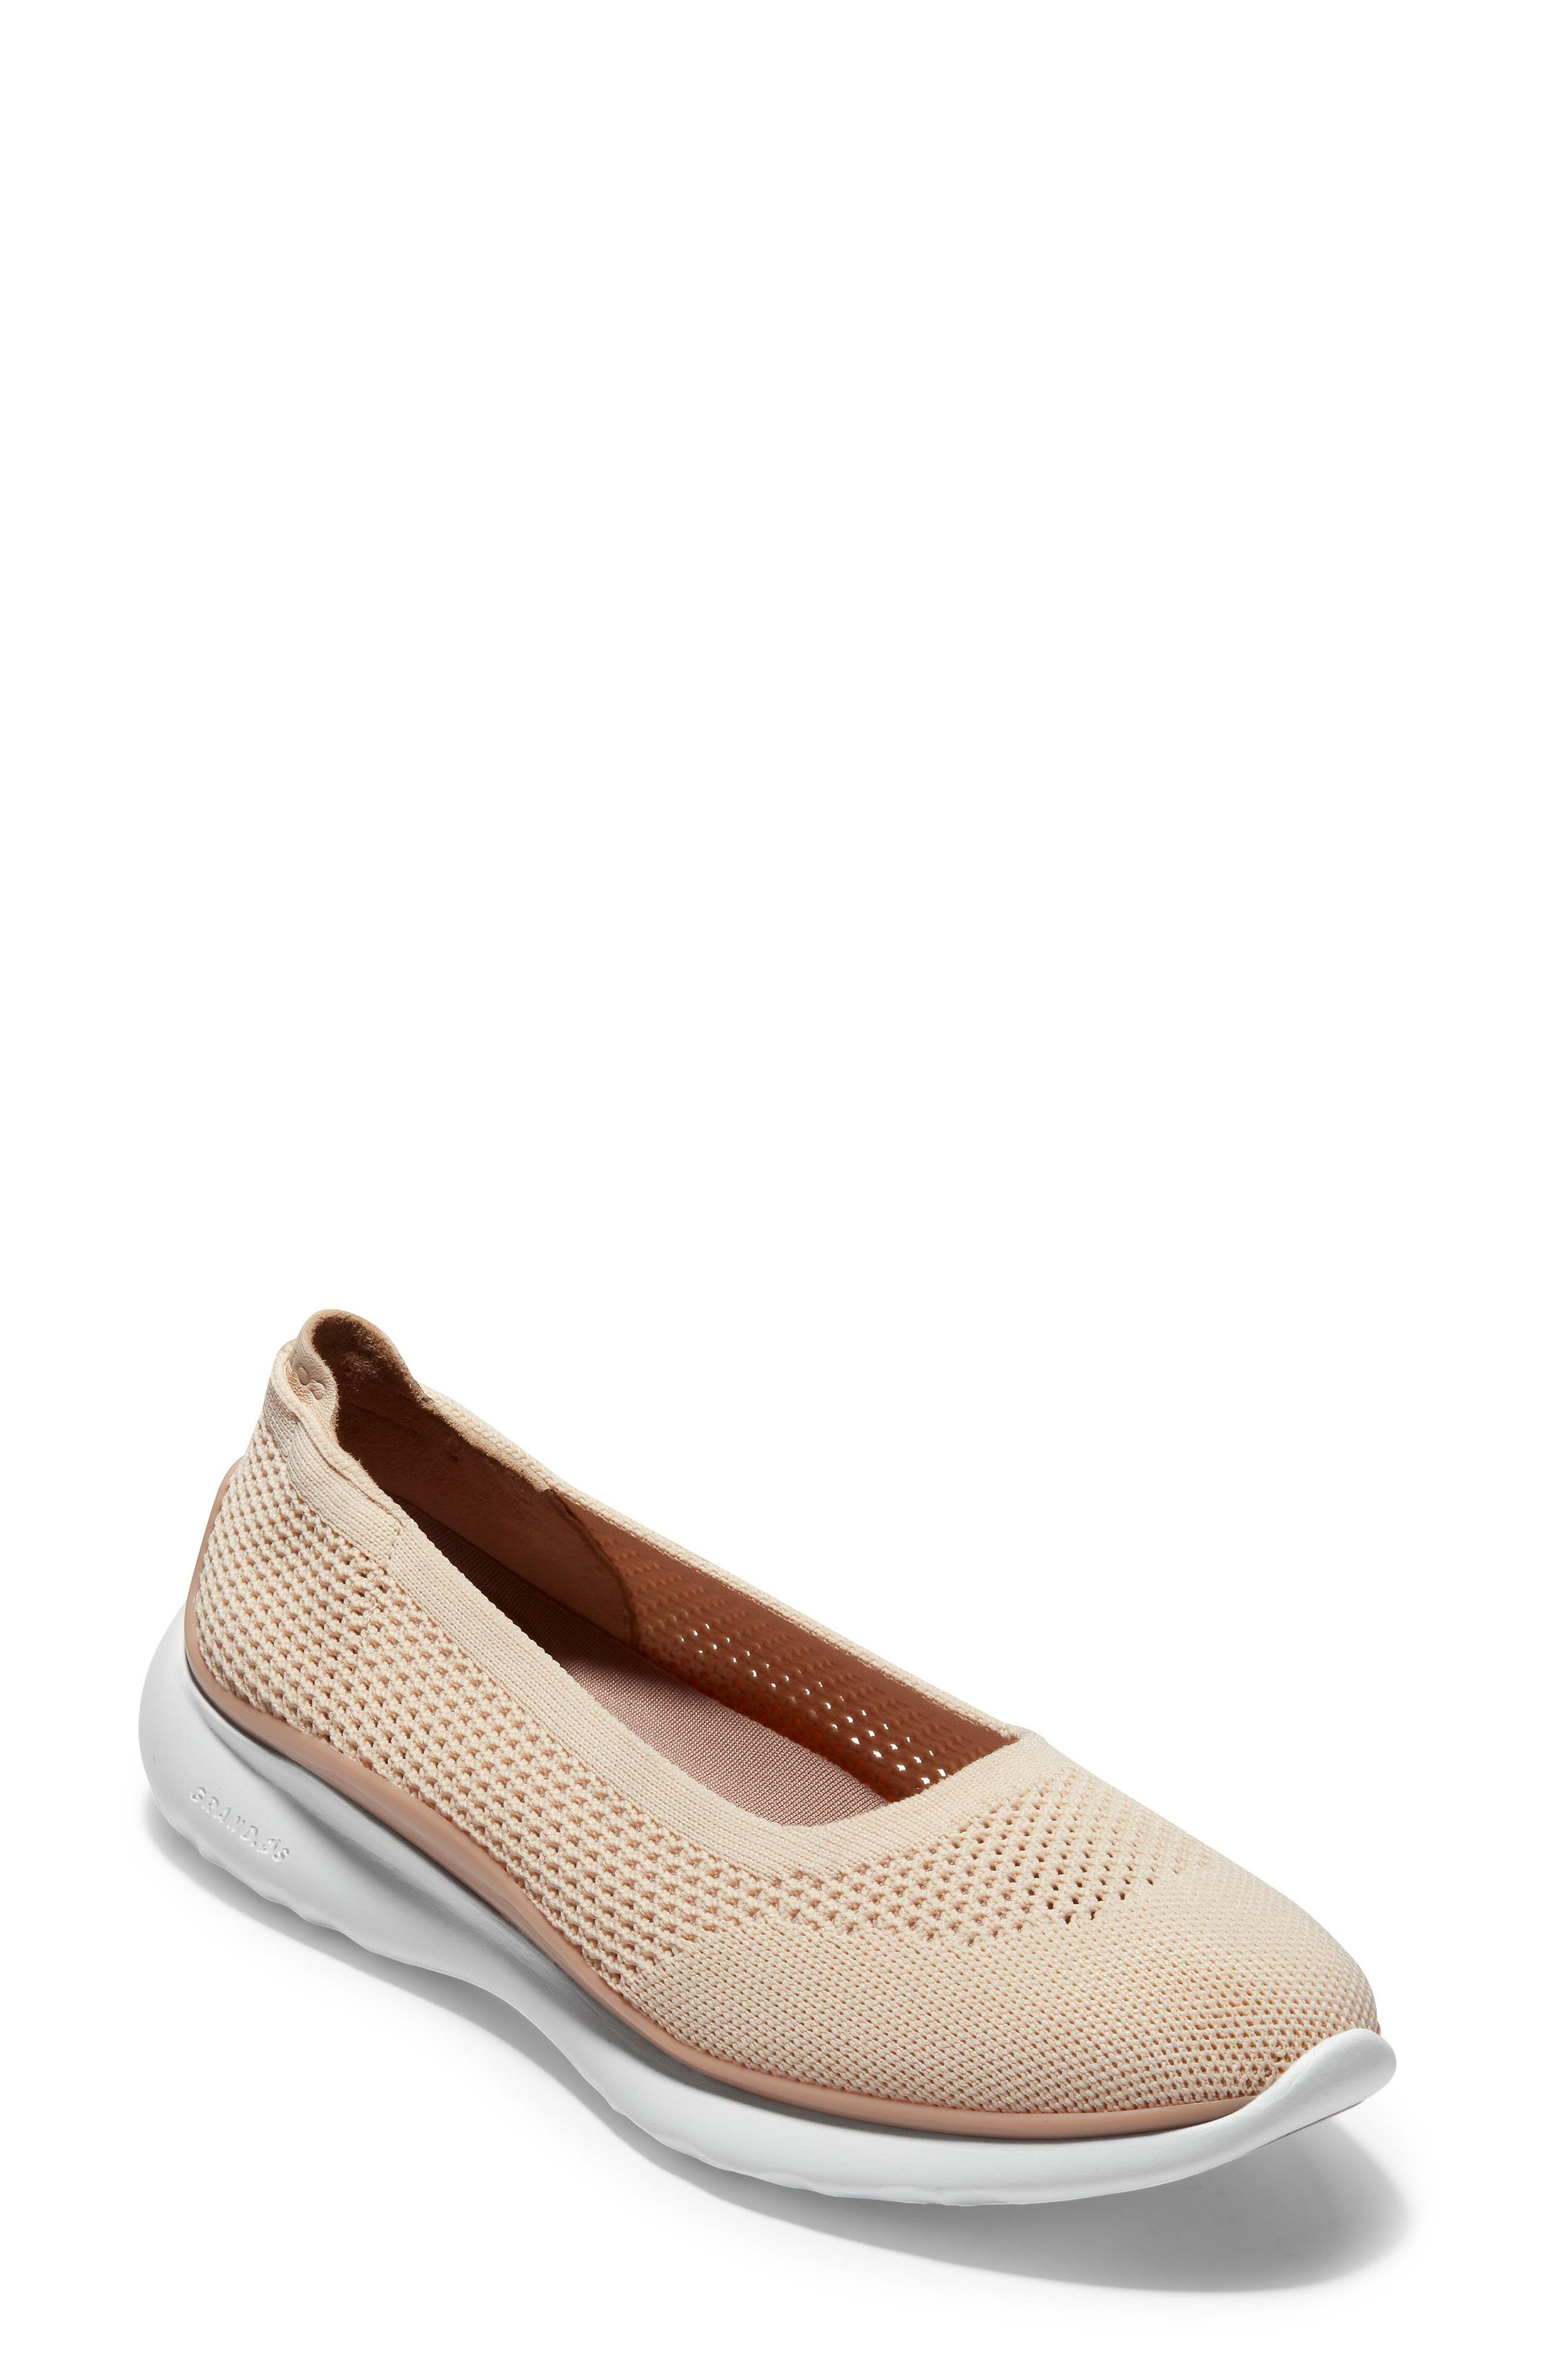 COLE HAAN, ZeroGrand Knit Sneaker, Main thumbnail 1, color, SAND/ ROSE KNIT/ LEATHER